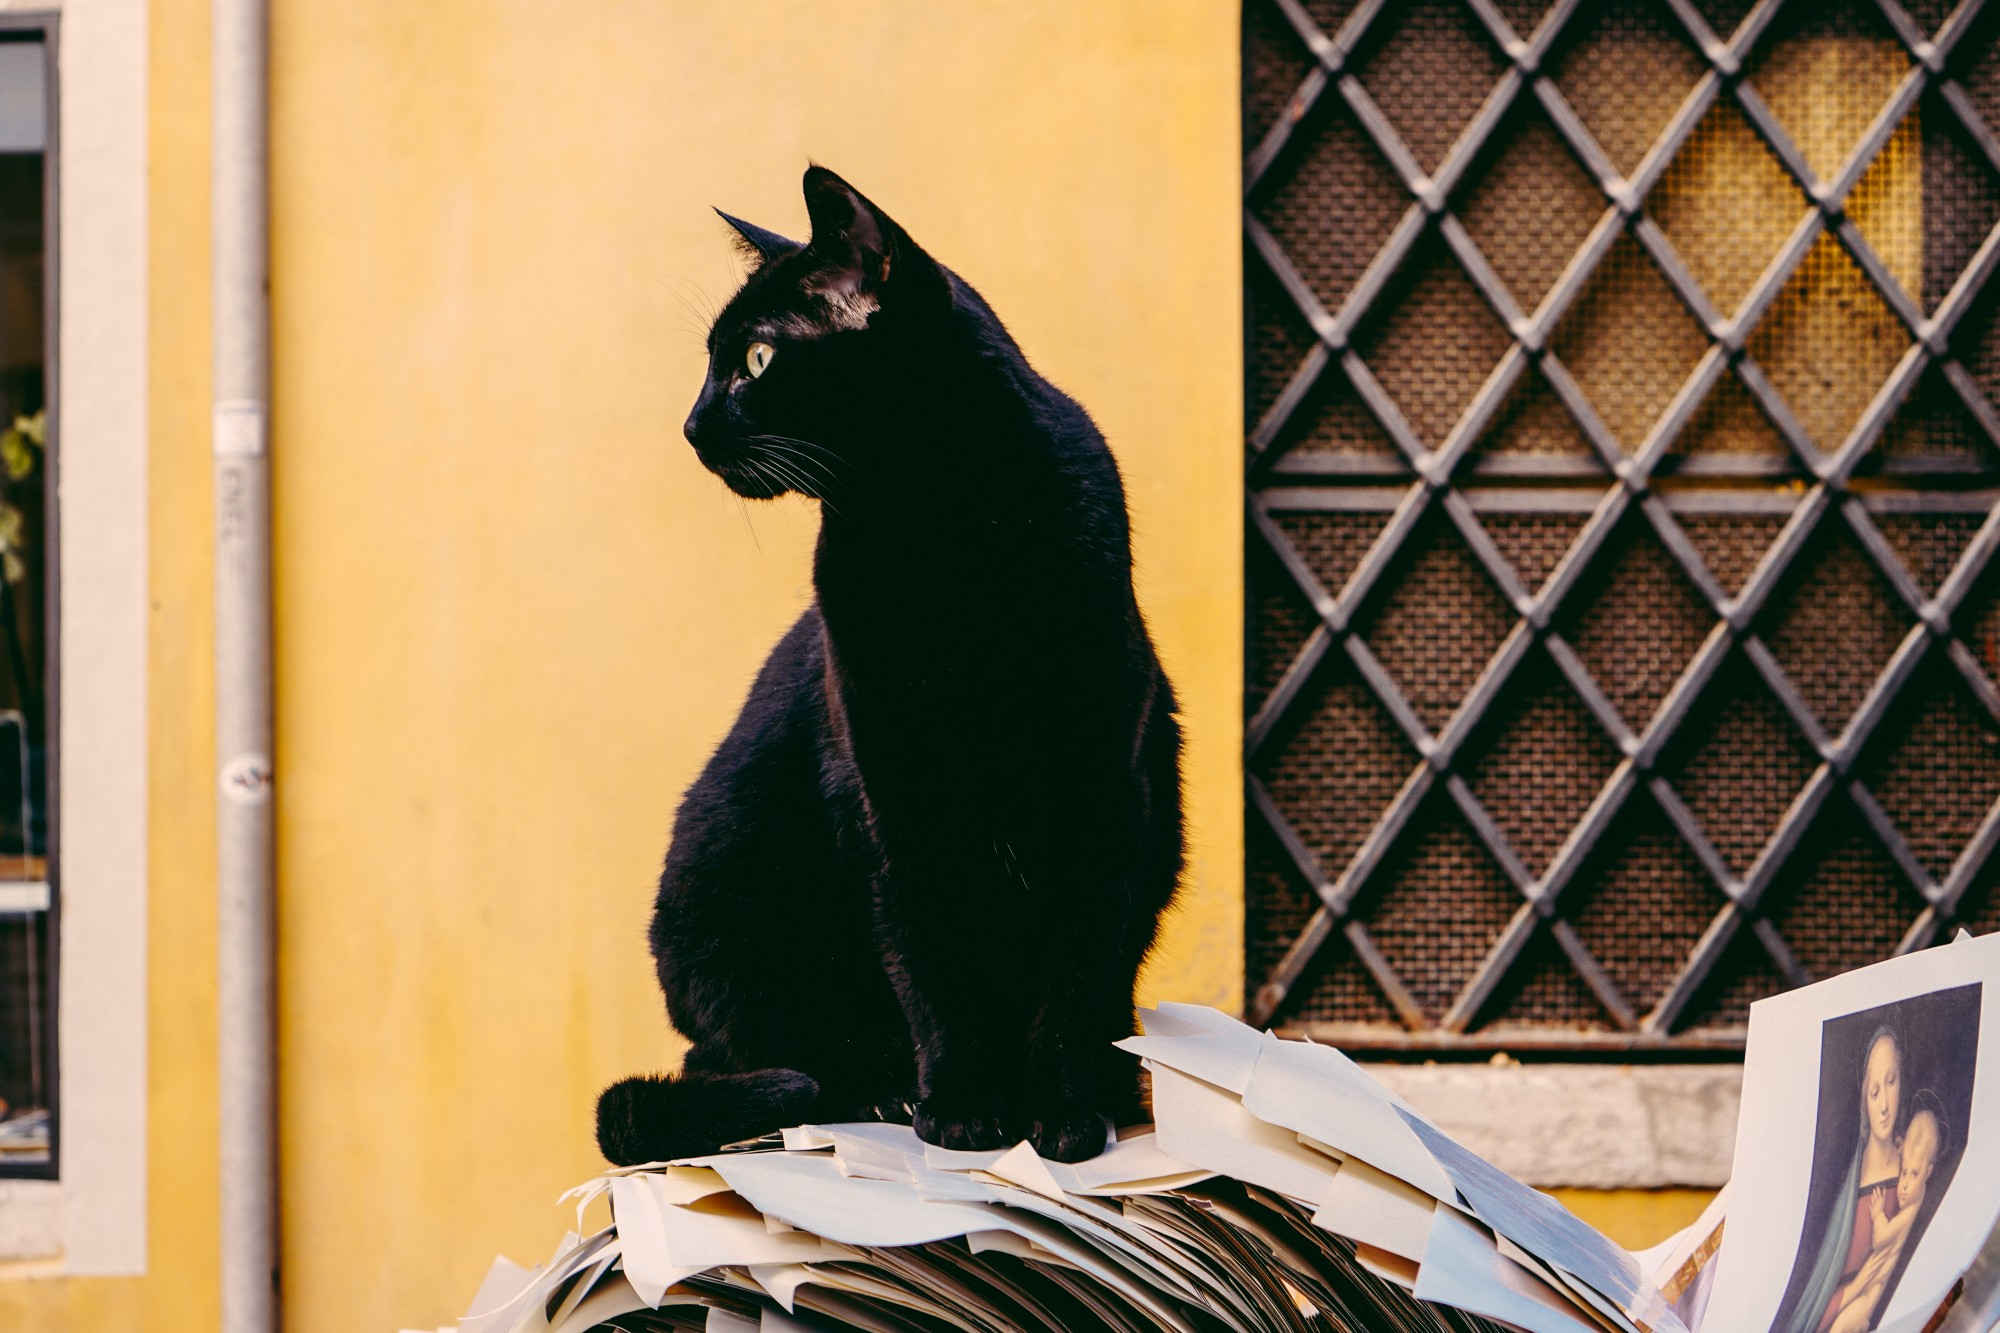 A cat sitting on top of a pile of newspapers, against a yellow city wall